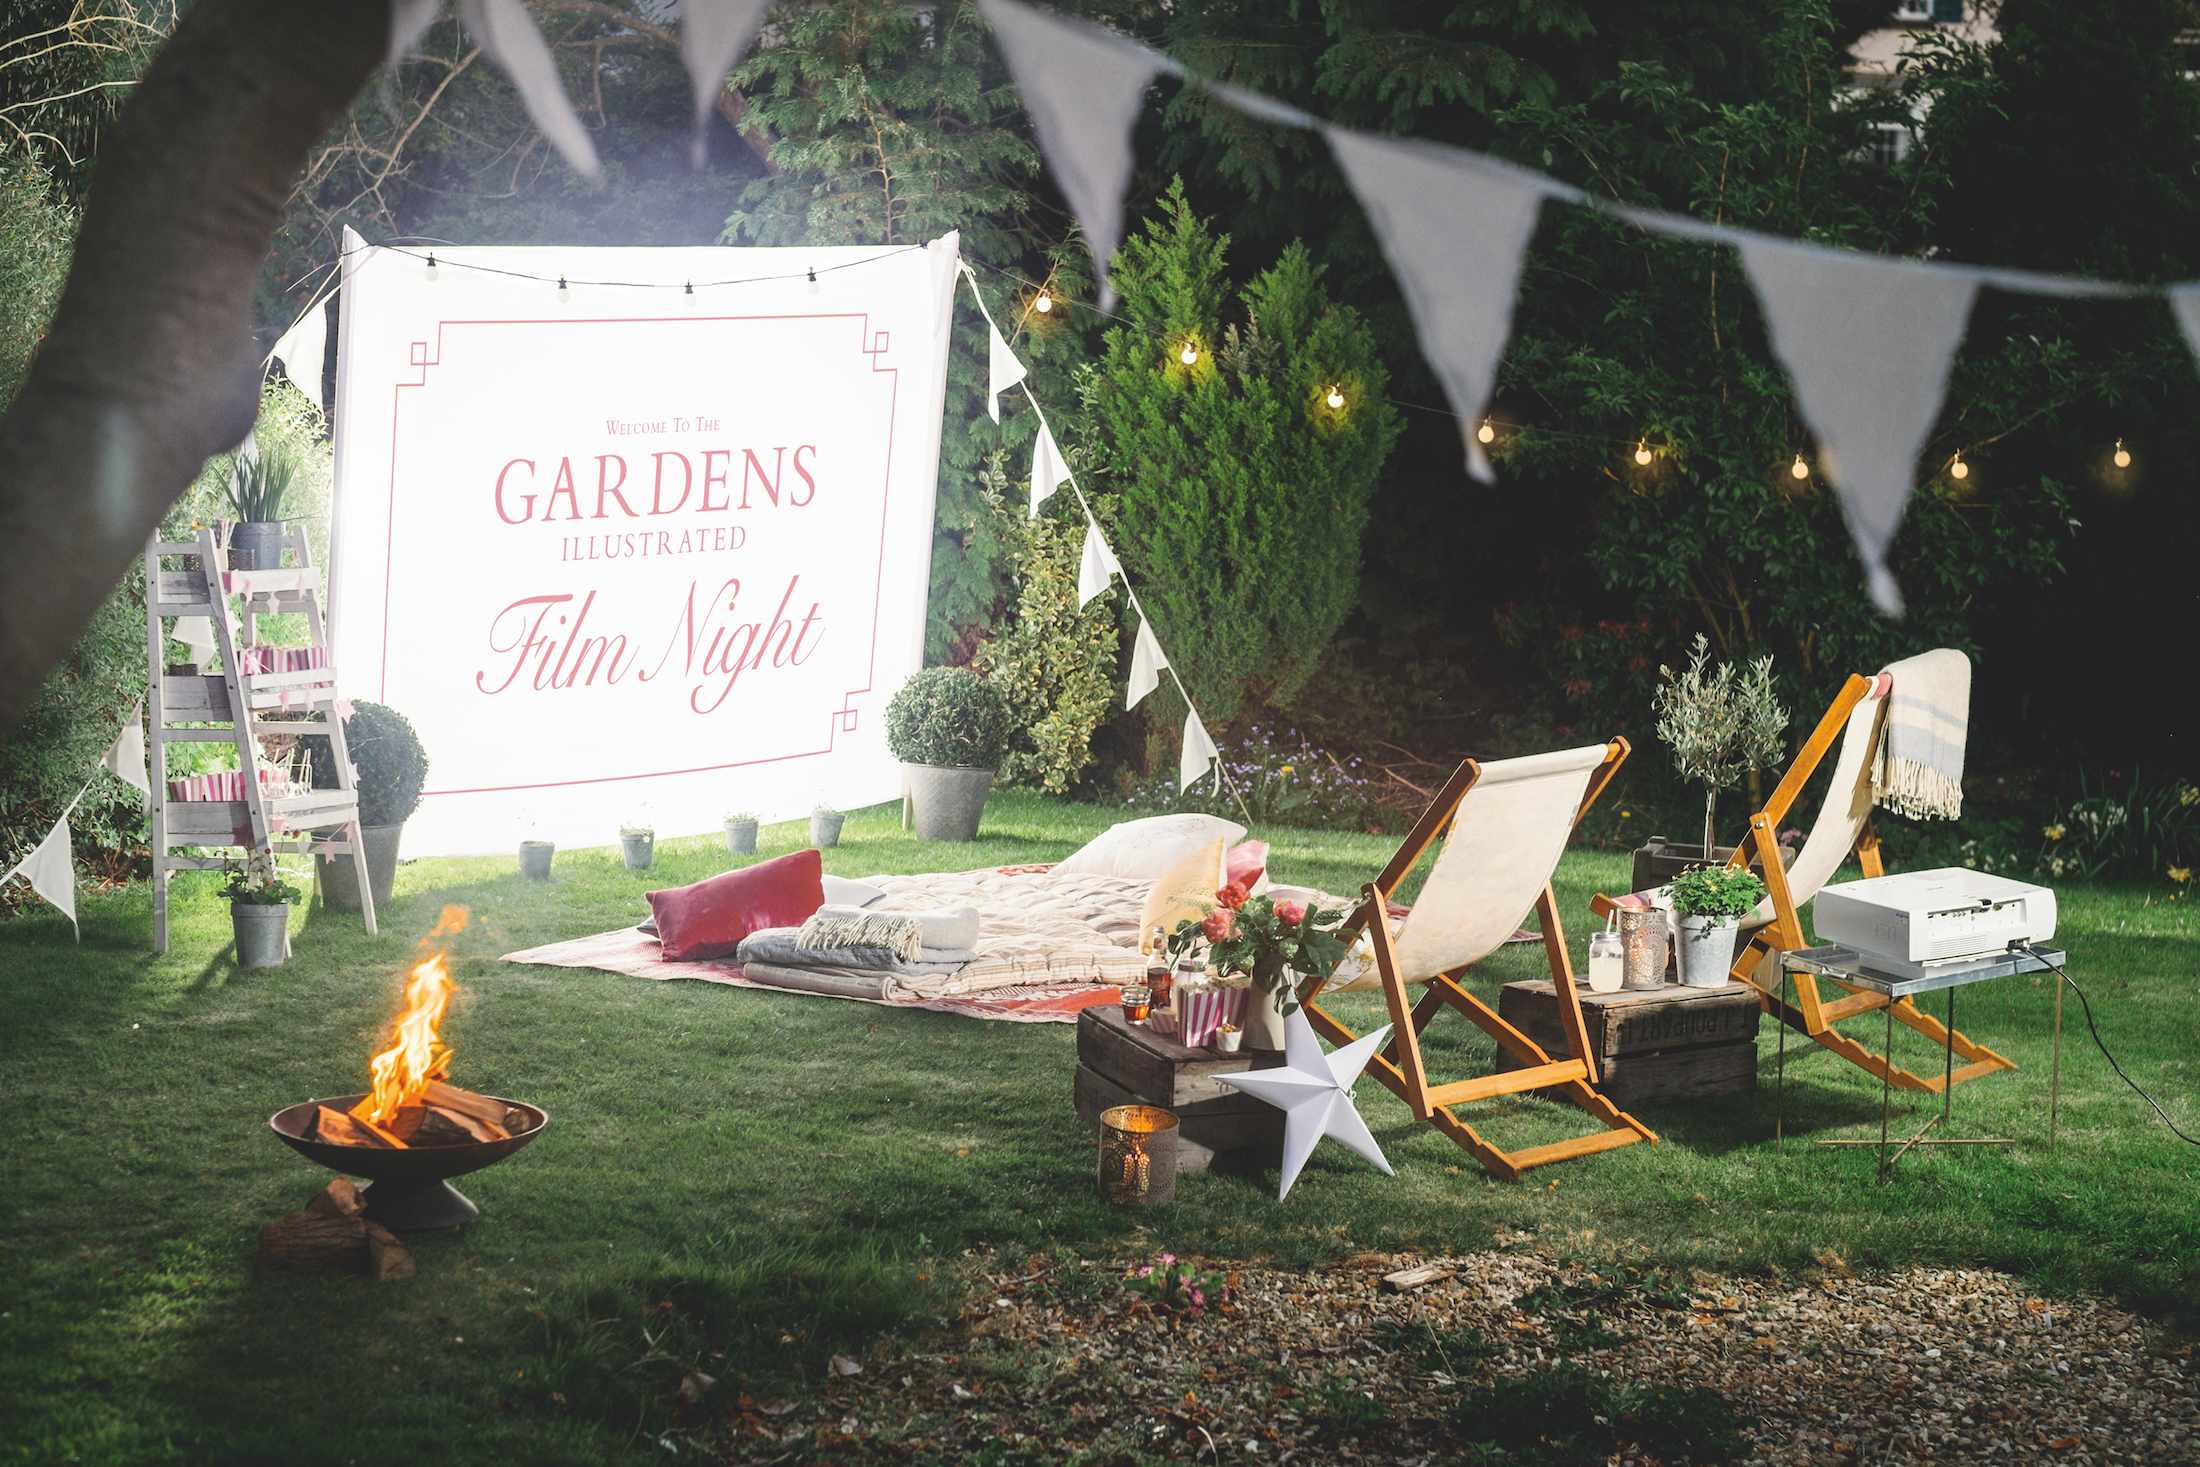 An outdoor cinema set up in a domestic garden complete with snack trolley, fire pit and deck chairs to help with the entertainment